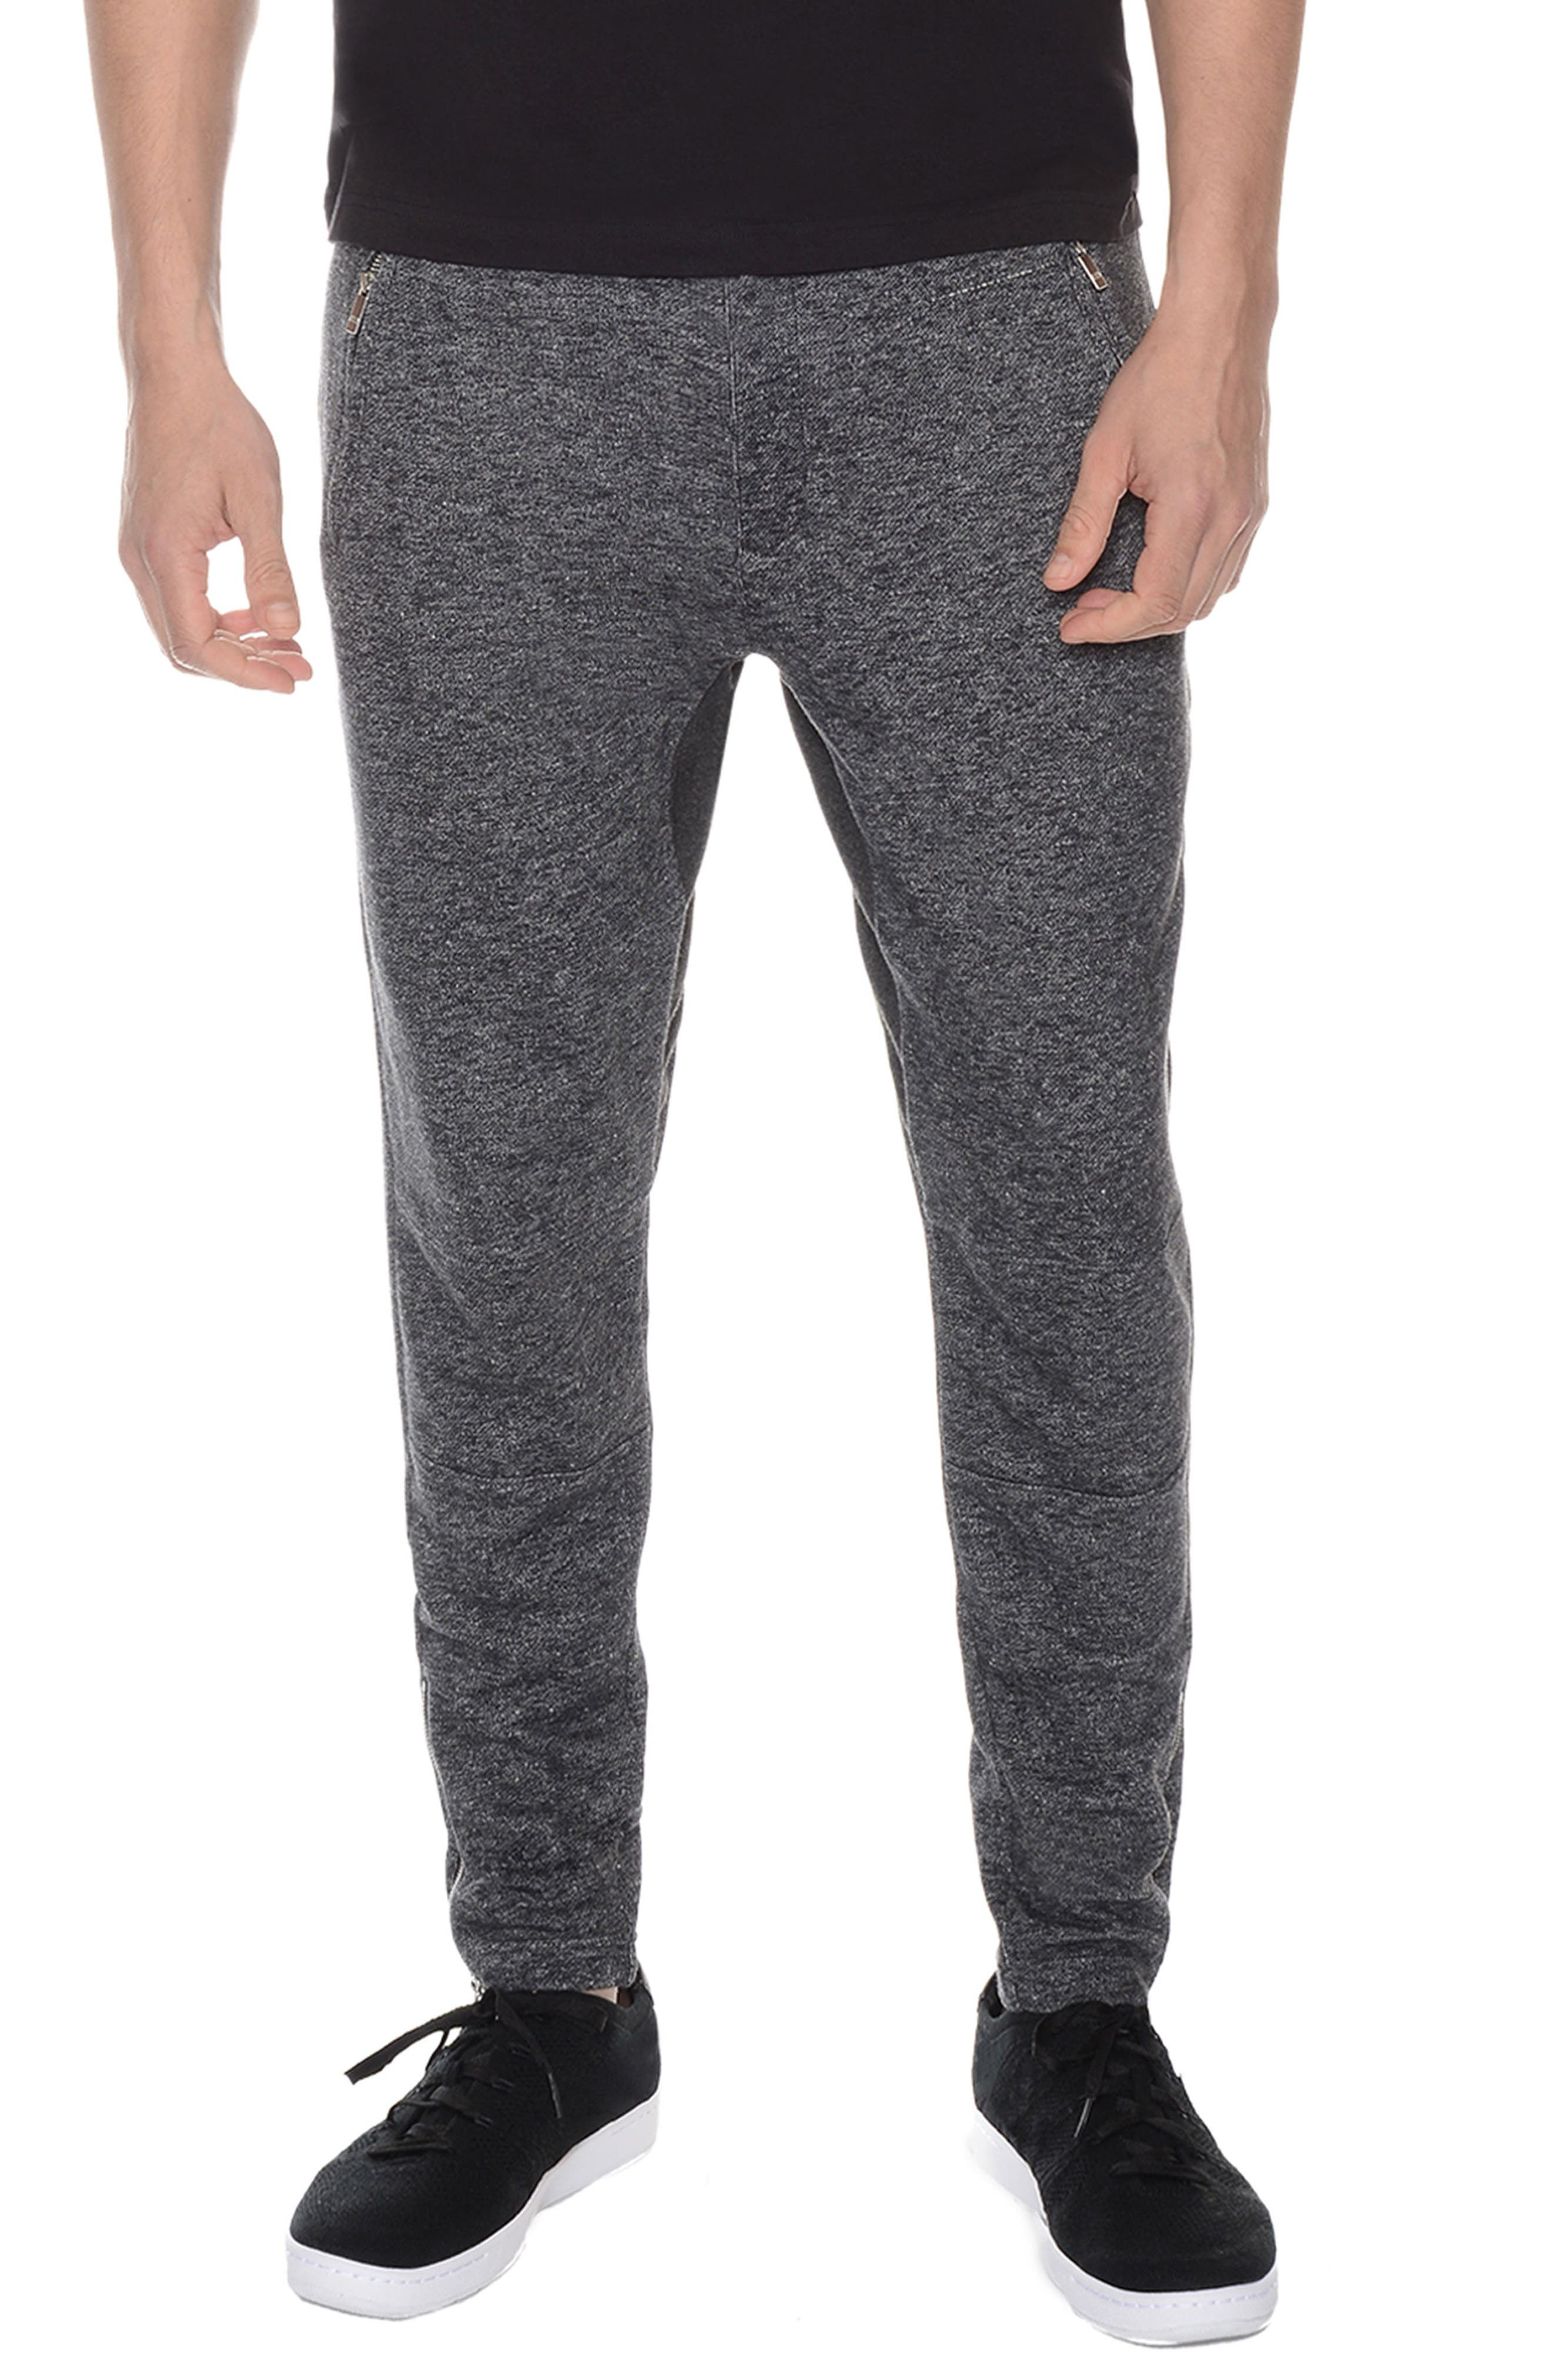 French Terry Lounge Pants,                             Main thumbnail 1, color,                             Black Heather